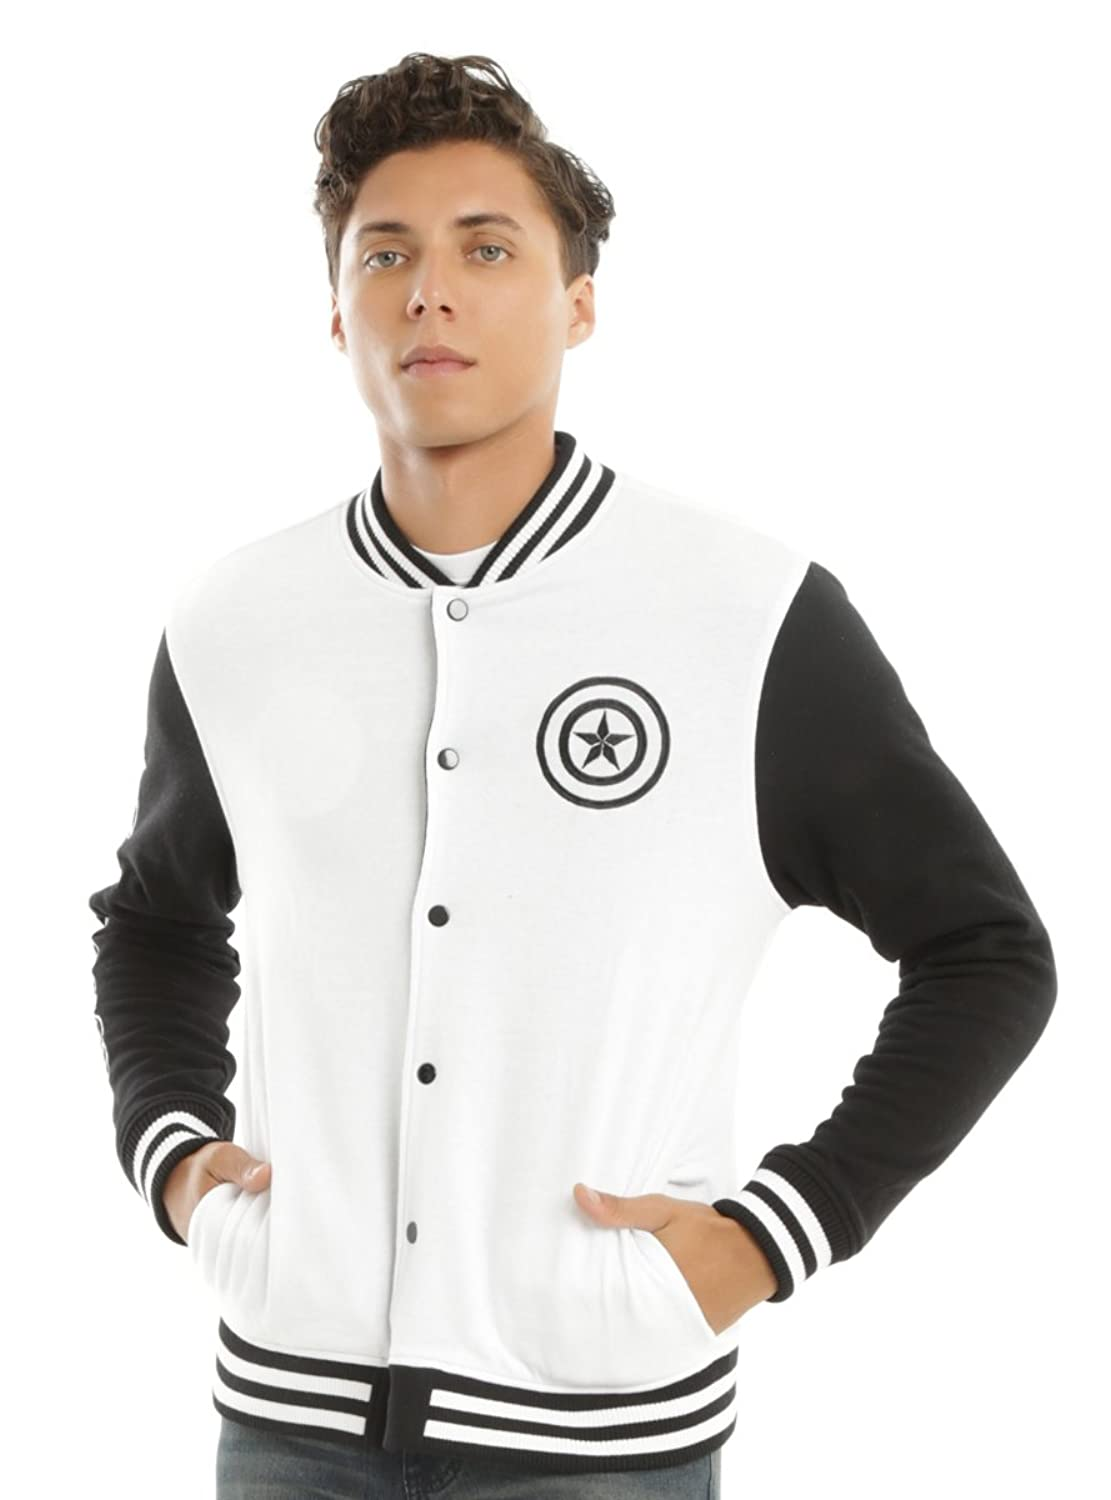 Captain America: Civil War Adult Tony Stark Iron Man Reversible Varsity Jacket - DeluxeAdultCostumes.com